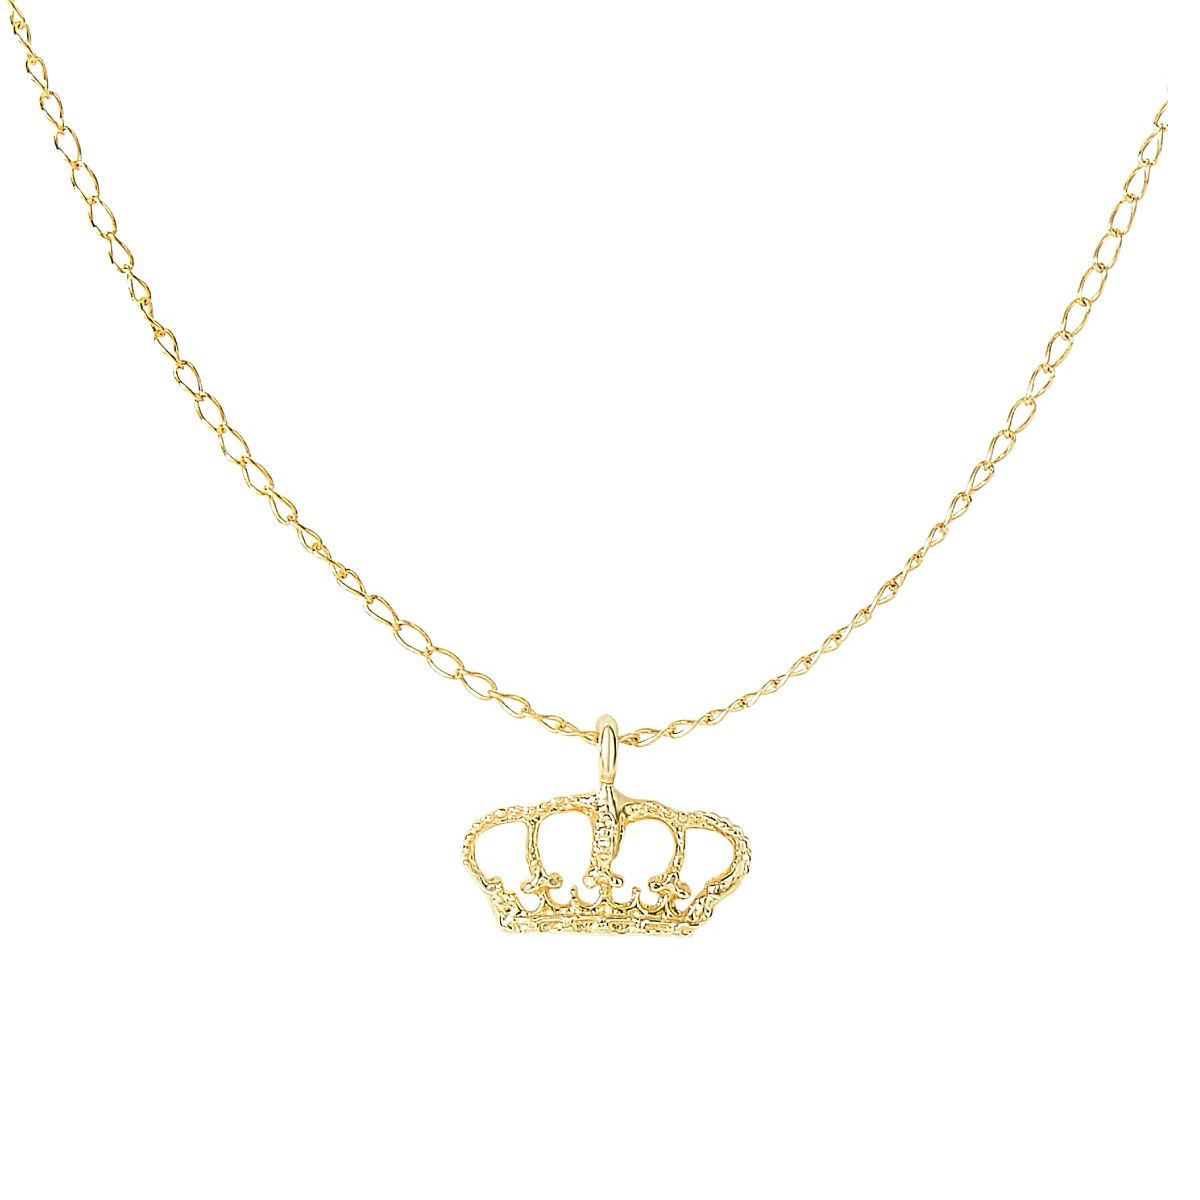 rose products c plated necklace pendant diadem jewelry silver sterling gold for original crown chain women